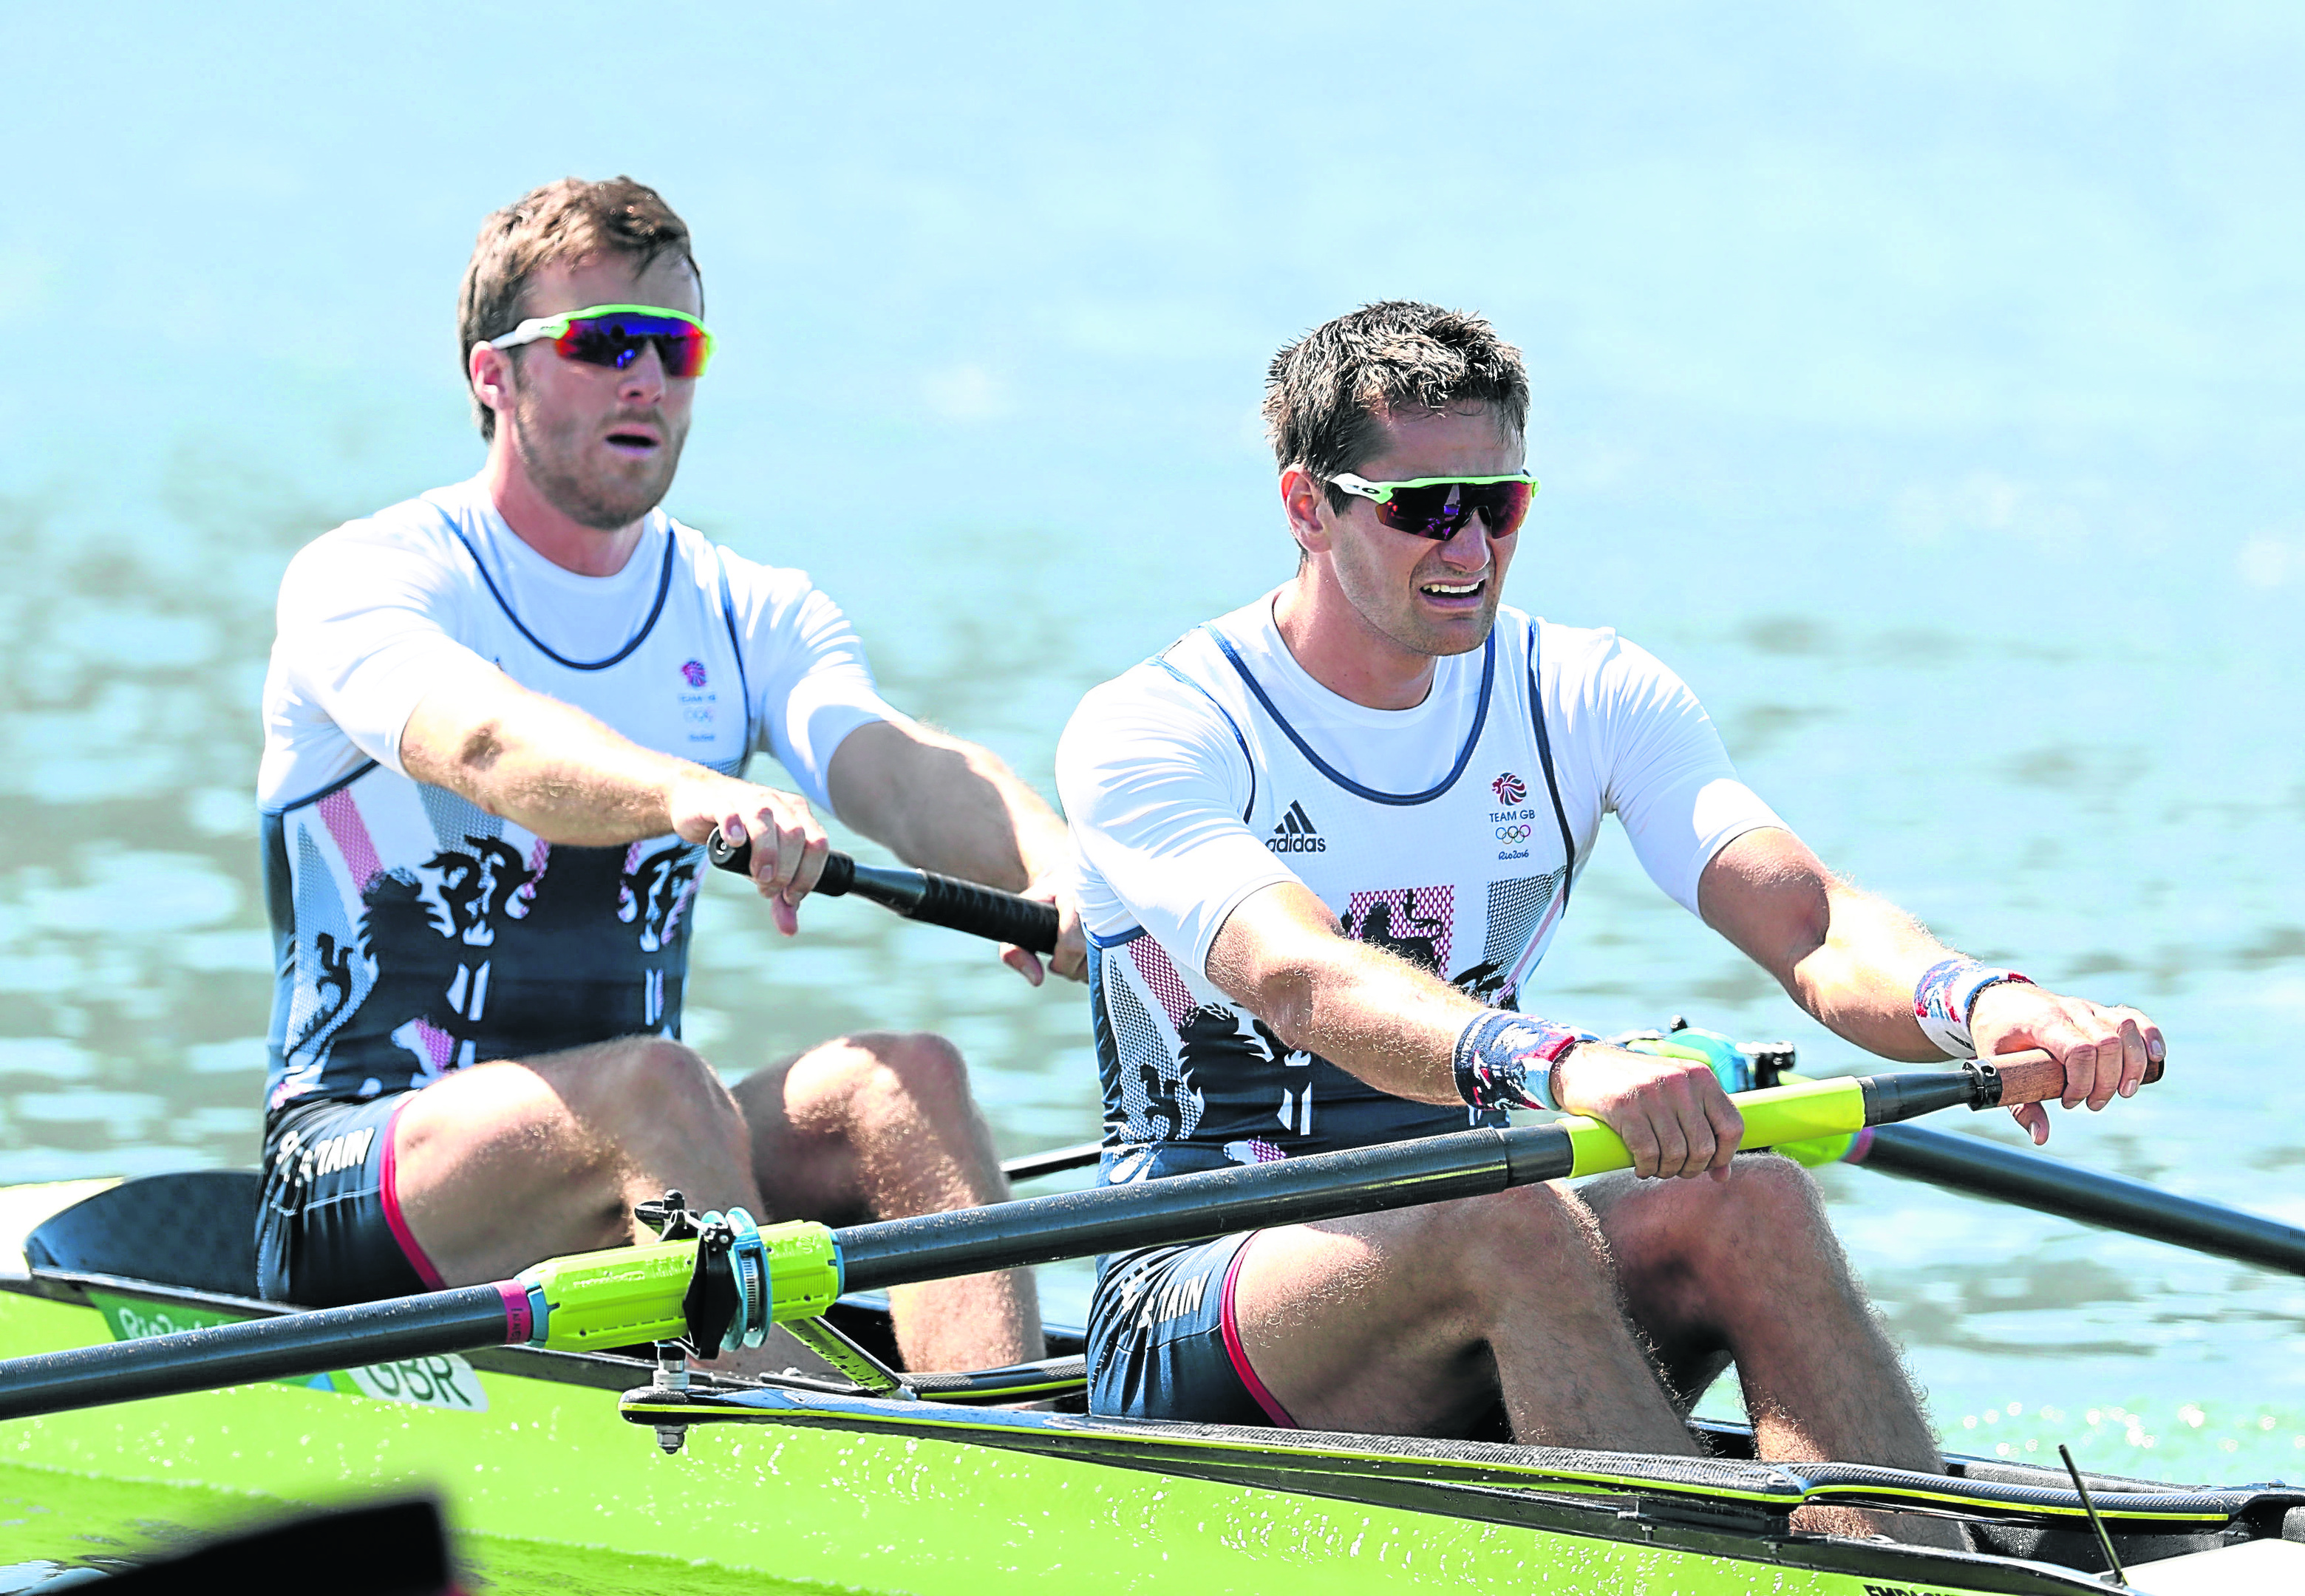 Great Britain's Stewart Innes and Alan Sinclair during the Men's Pairs Final A, in the Rio Olympics Games.